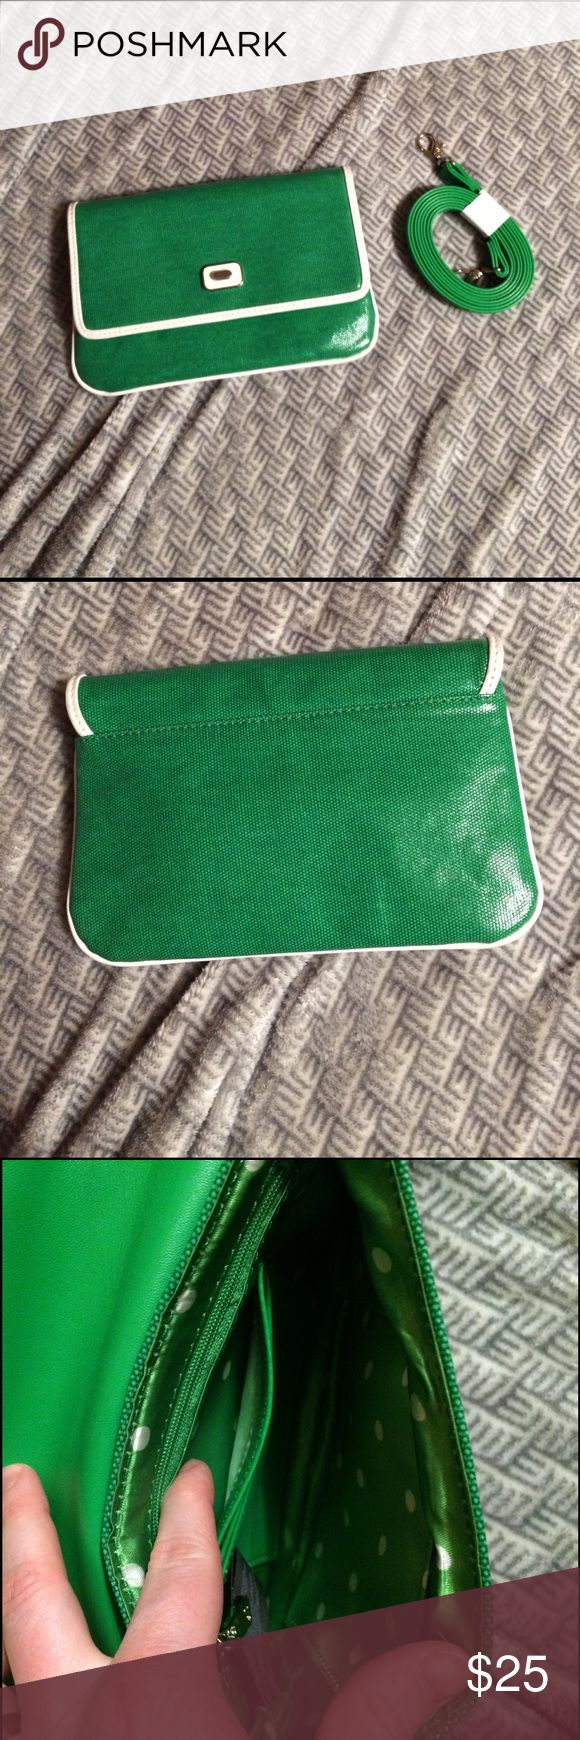 Grace Adele clutch Cute green and white Grace Adele clutch. Like new condition. Only used for about a month as a wallet. Has a strap that can be attached but I never used it. Comes with a dust bag. Grace Adele Bags Clutches & Wristlets